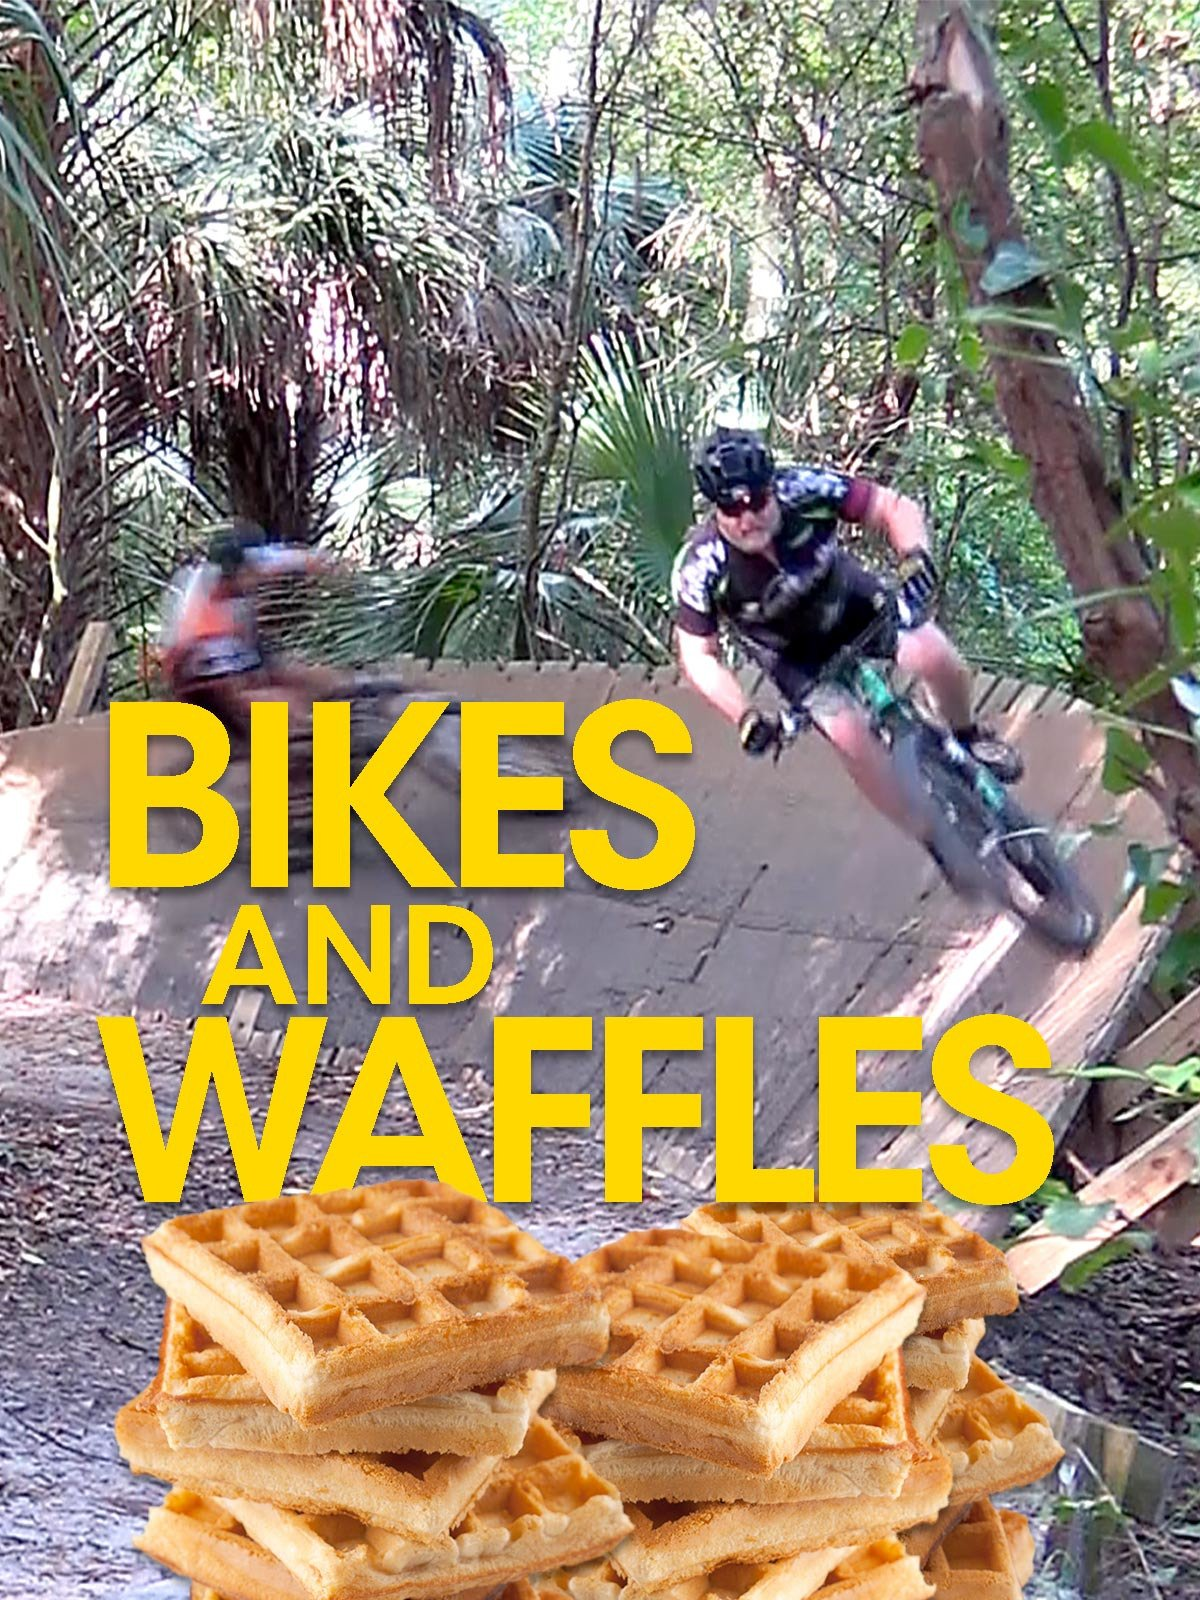 Bikes and Waffles